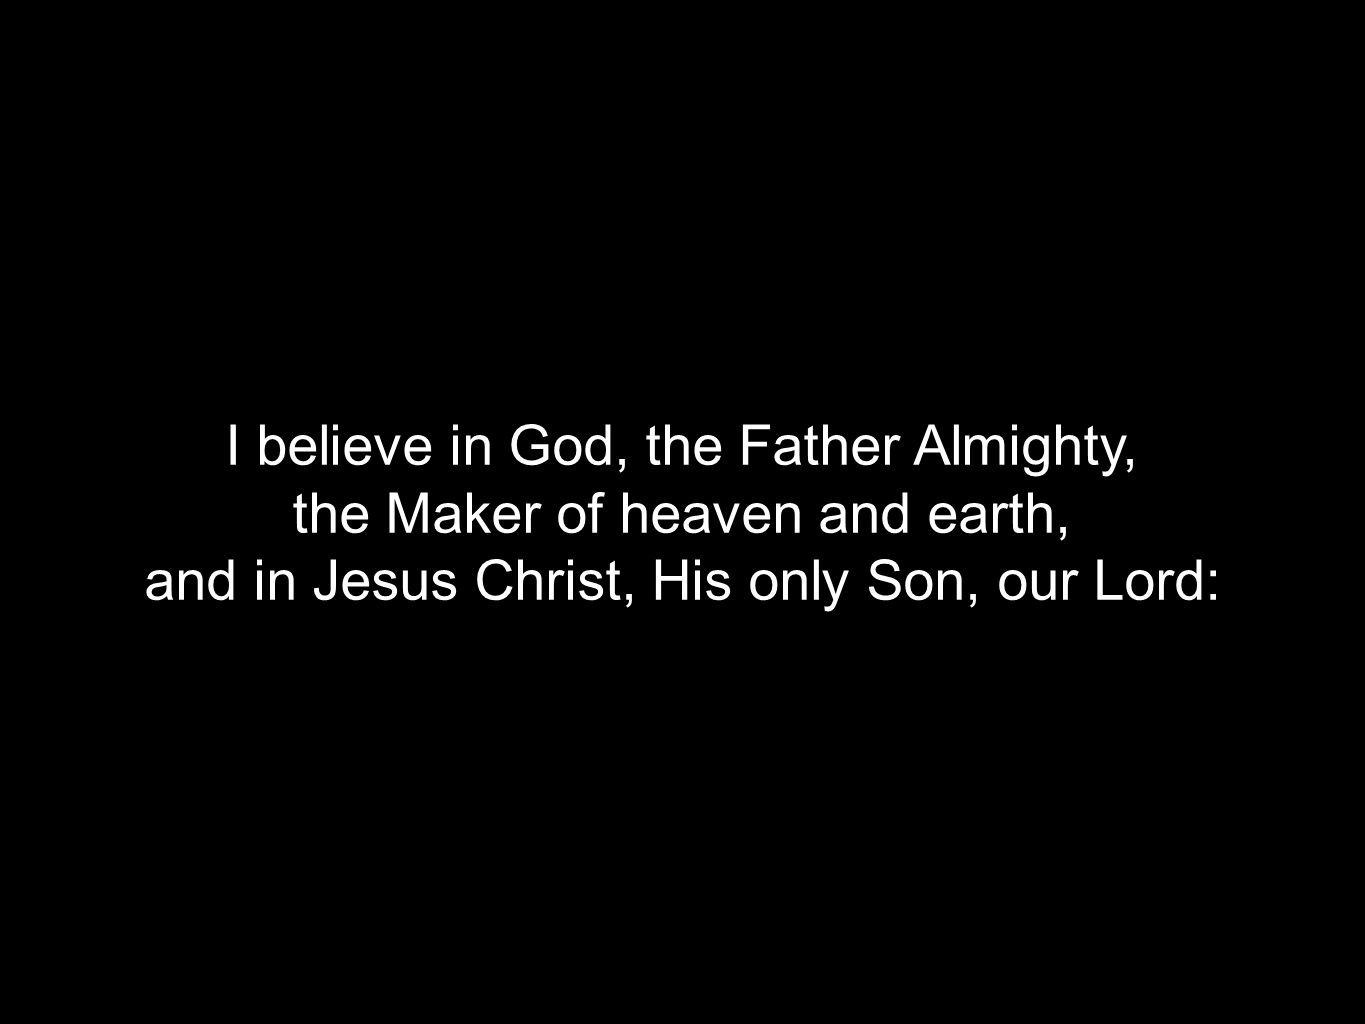 I believe in God, the Father Almighty, the Maker of heaven and earth, and in Jesus Christ, His only Son, our Lord: